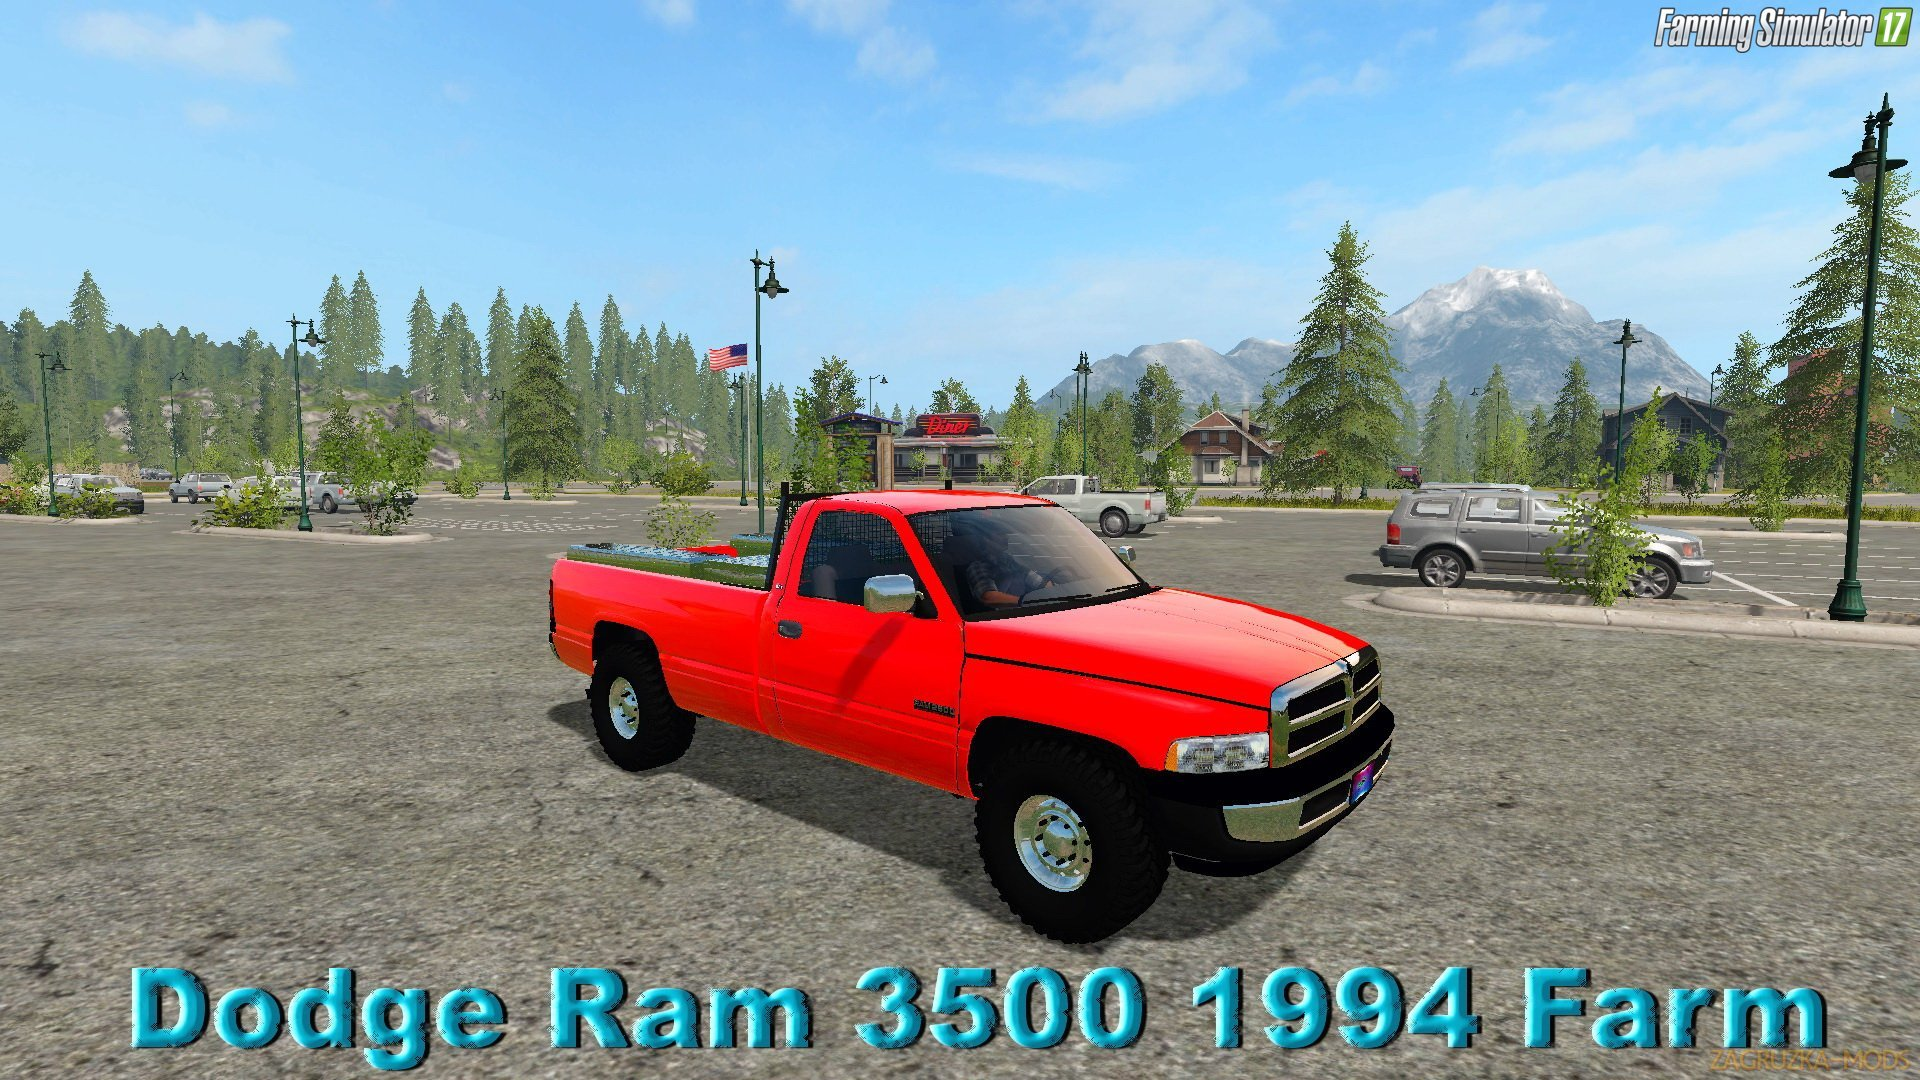 Dodge Ram 3500 1994 Farm Truck v1.0 for FS 17